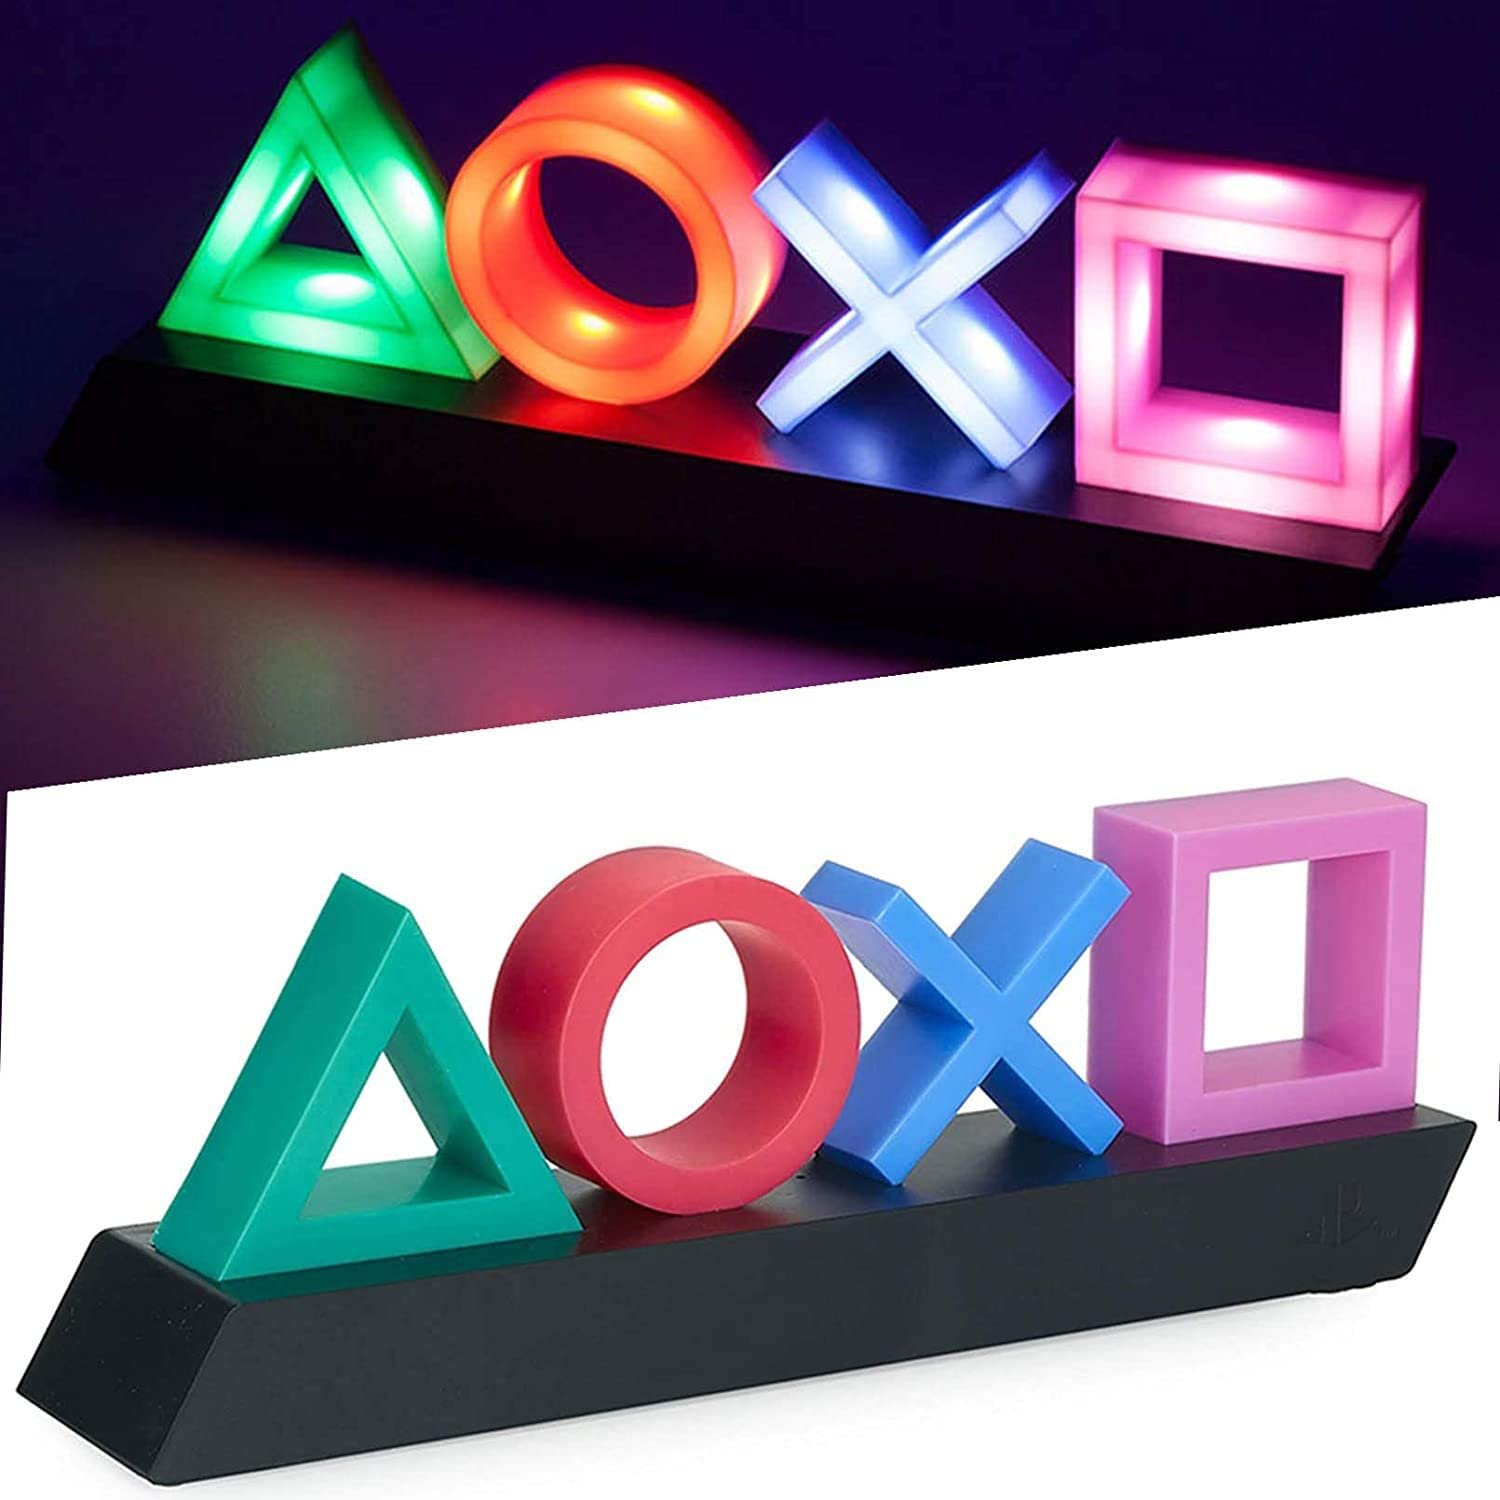 Yimimam Playstation Sign Game Icon Light Acrylic Atmosphere Neon Bar Lamp Bar Home Decorative Ornament Gaming LED Light